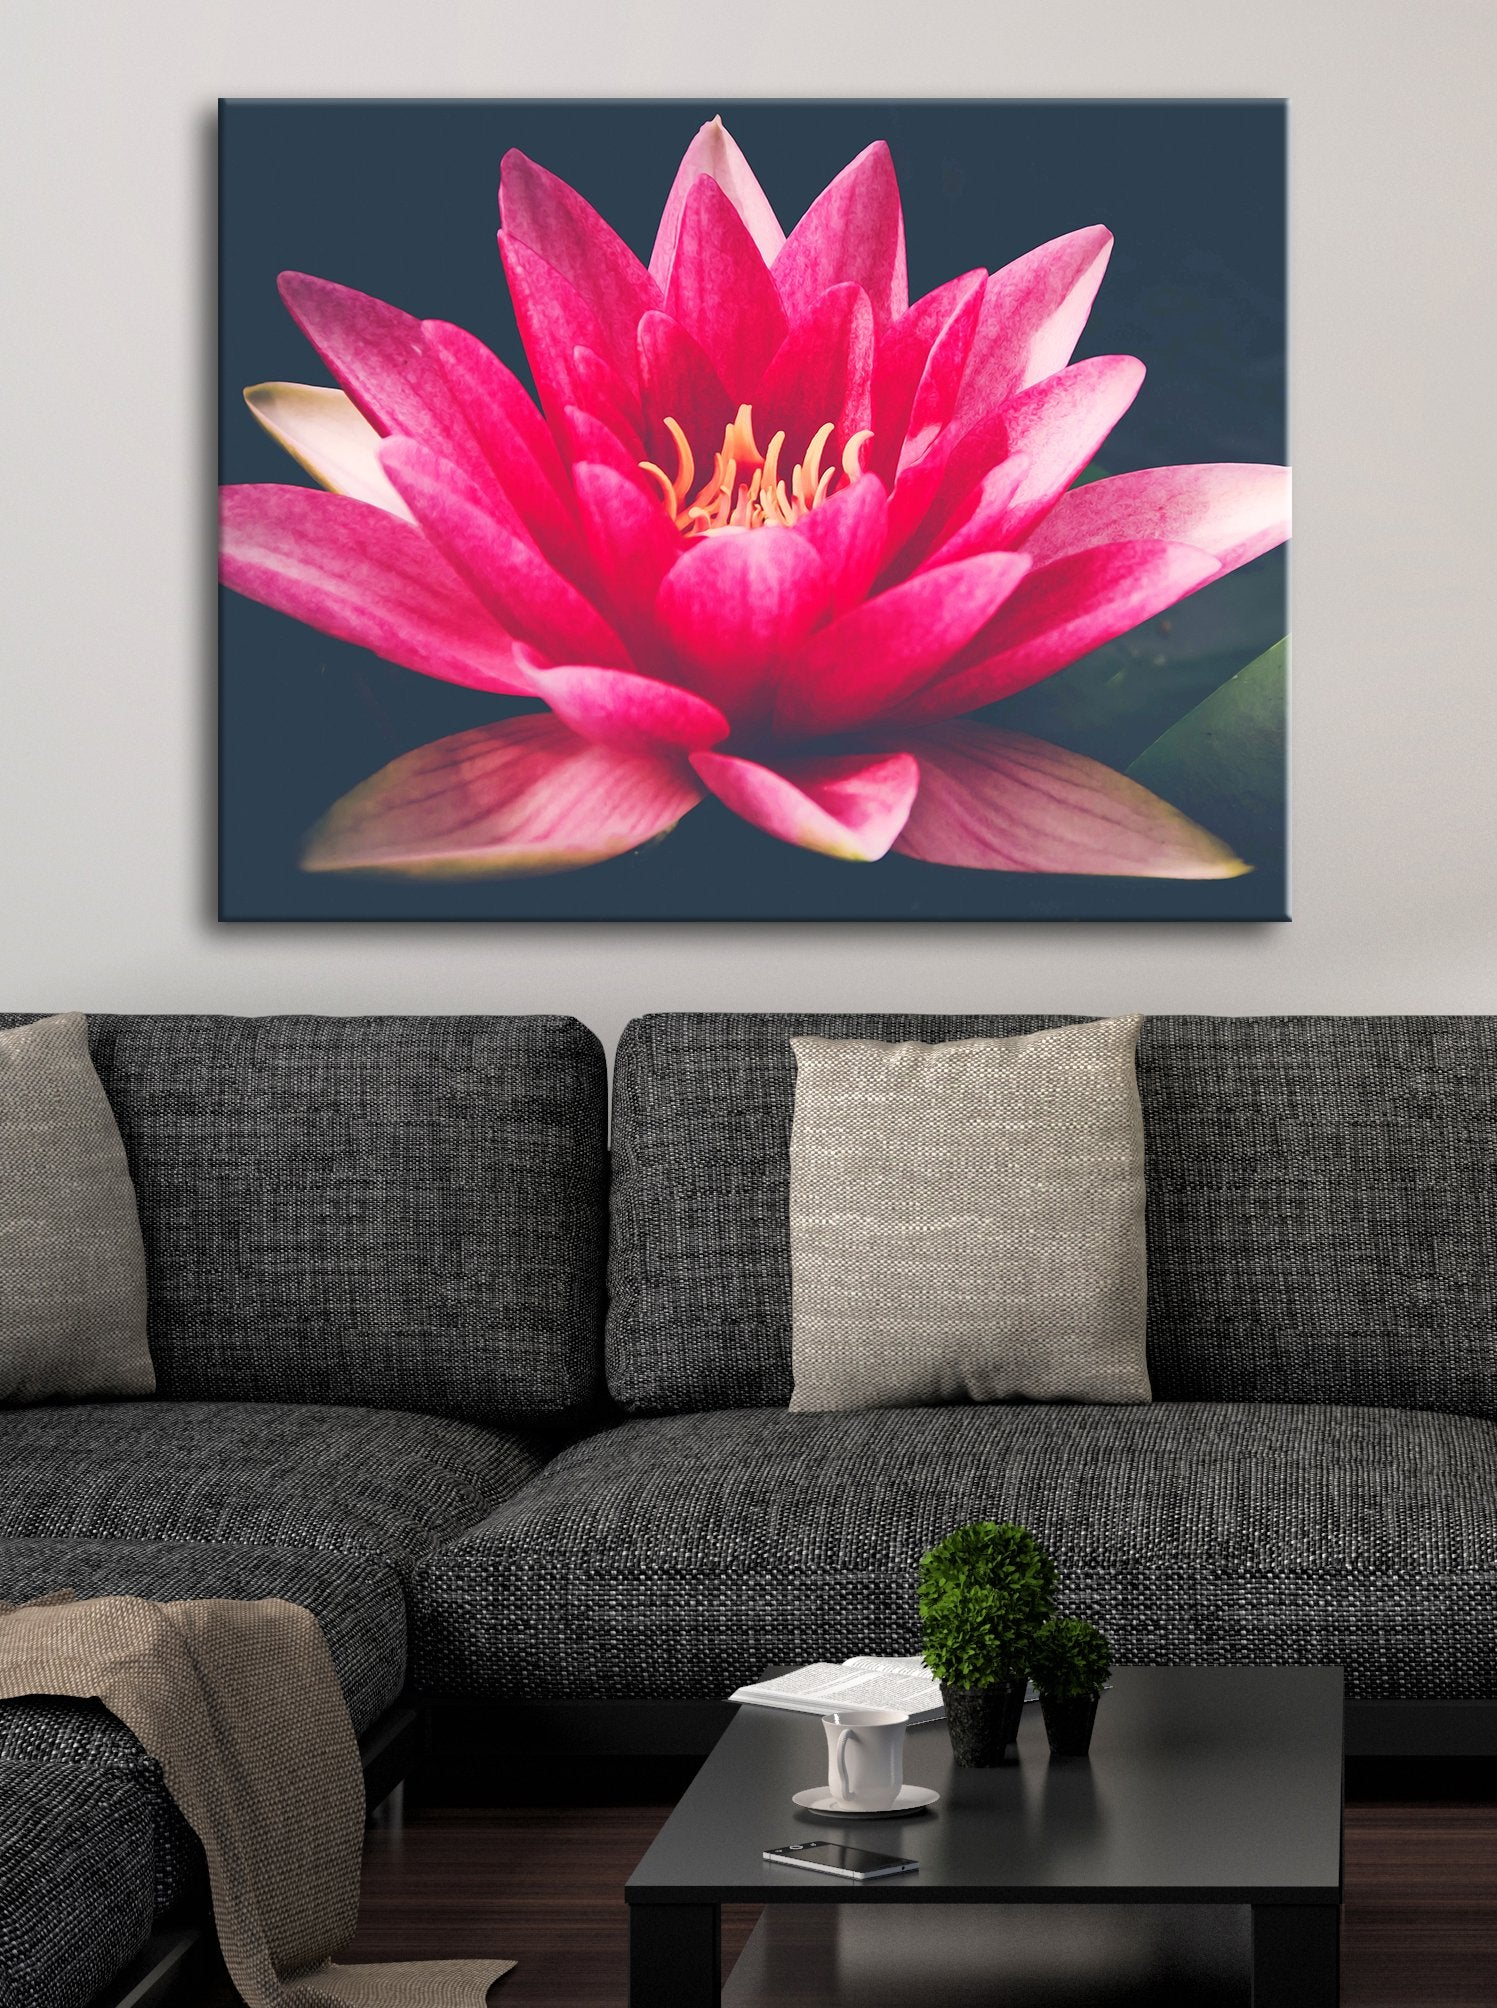 Flower Wall Art: Waterlily Pink (Wood Frame Ready To Hang)